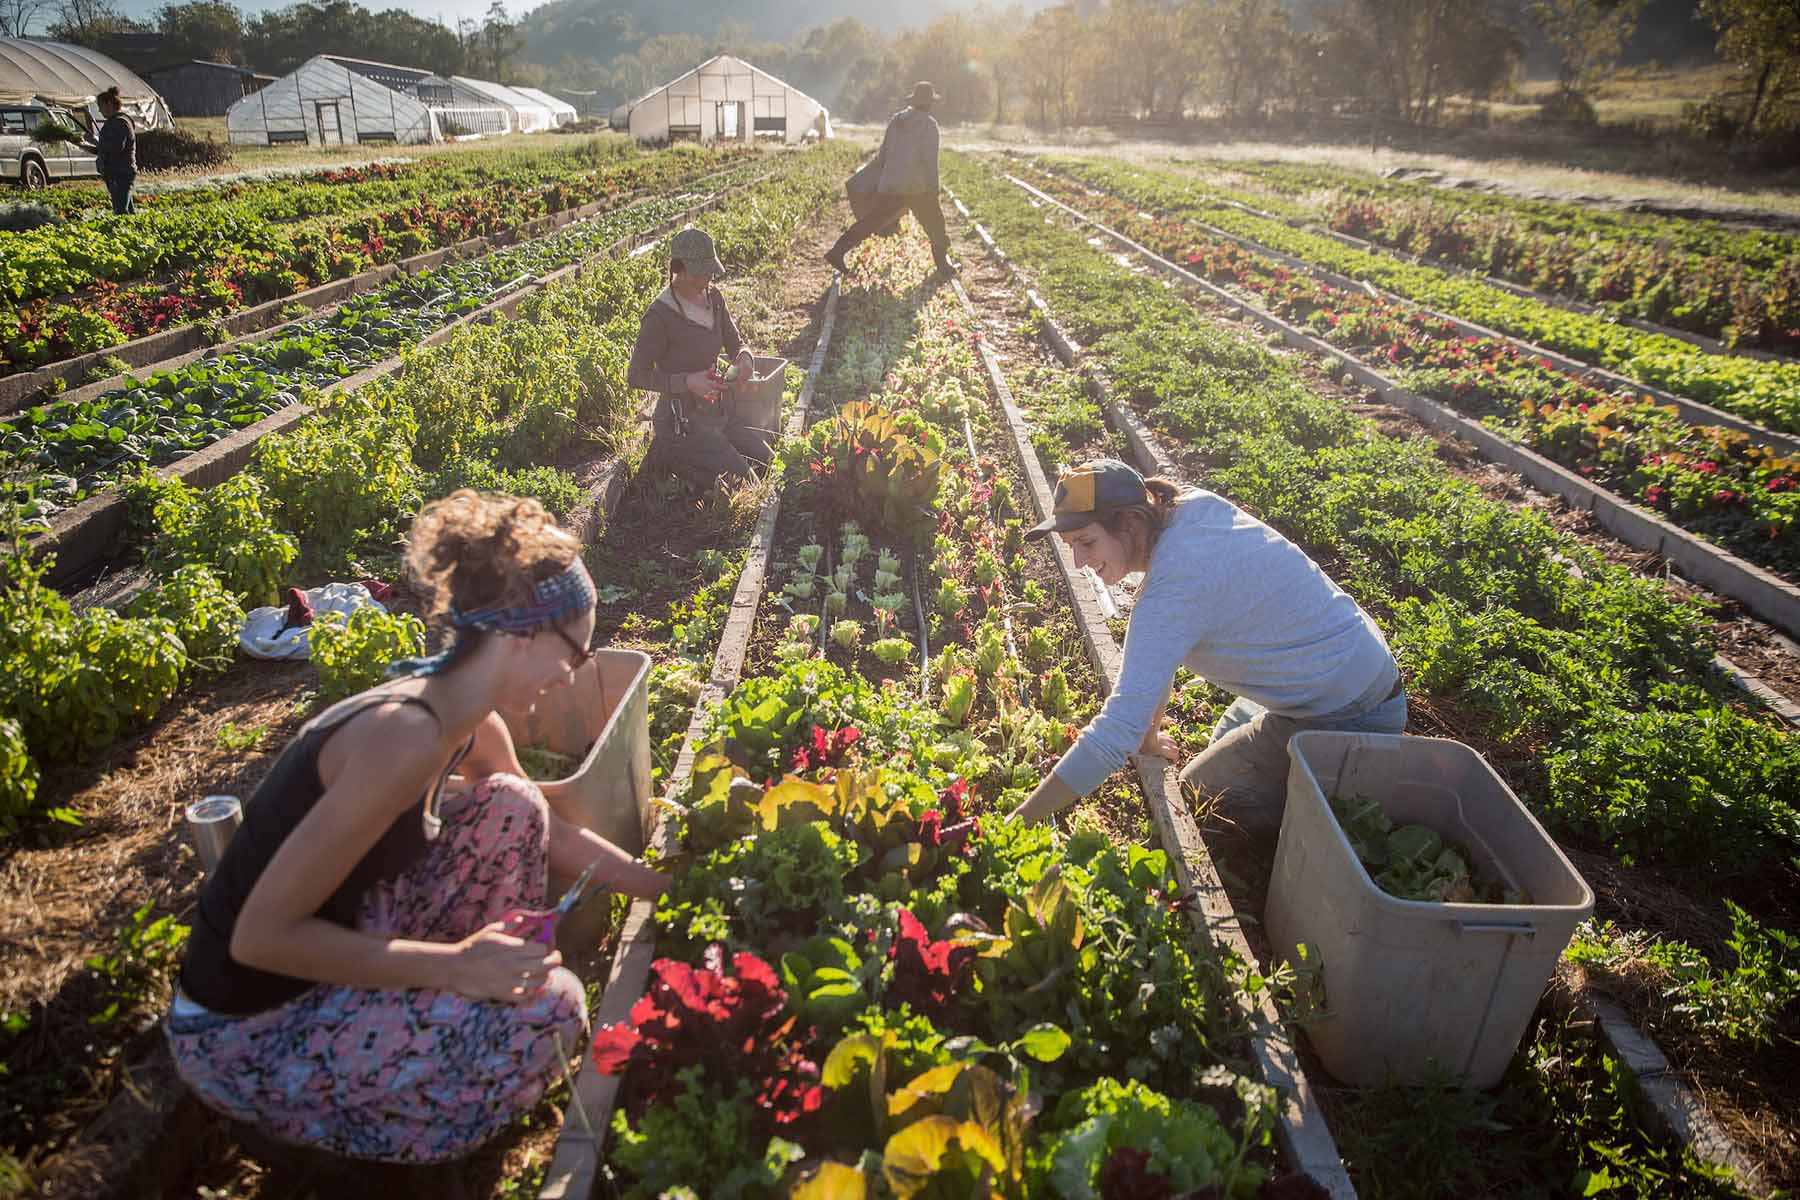 Photographs of employees harvesting produce at Green Edge Gardens in Amesville, Ohio on October 7, 2016